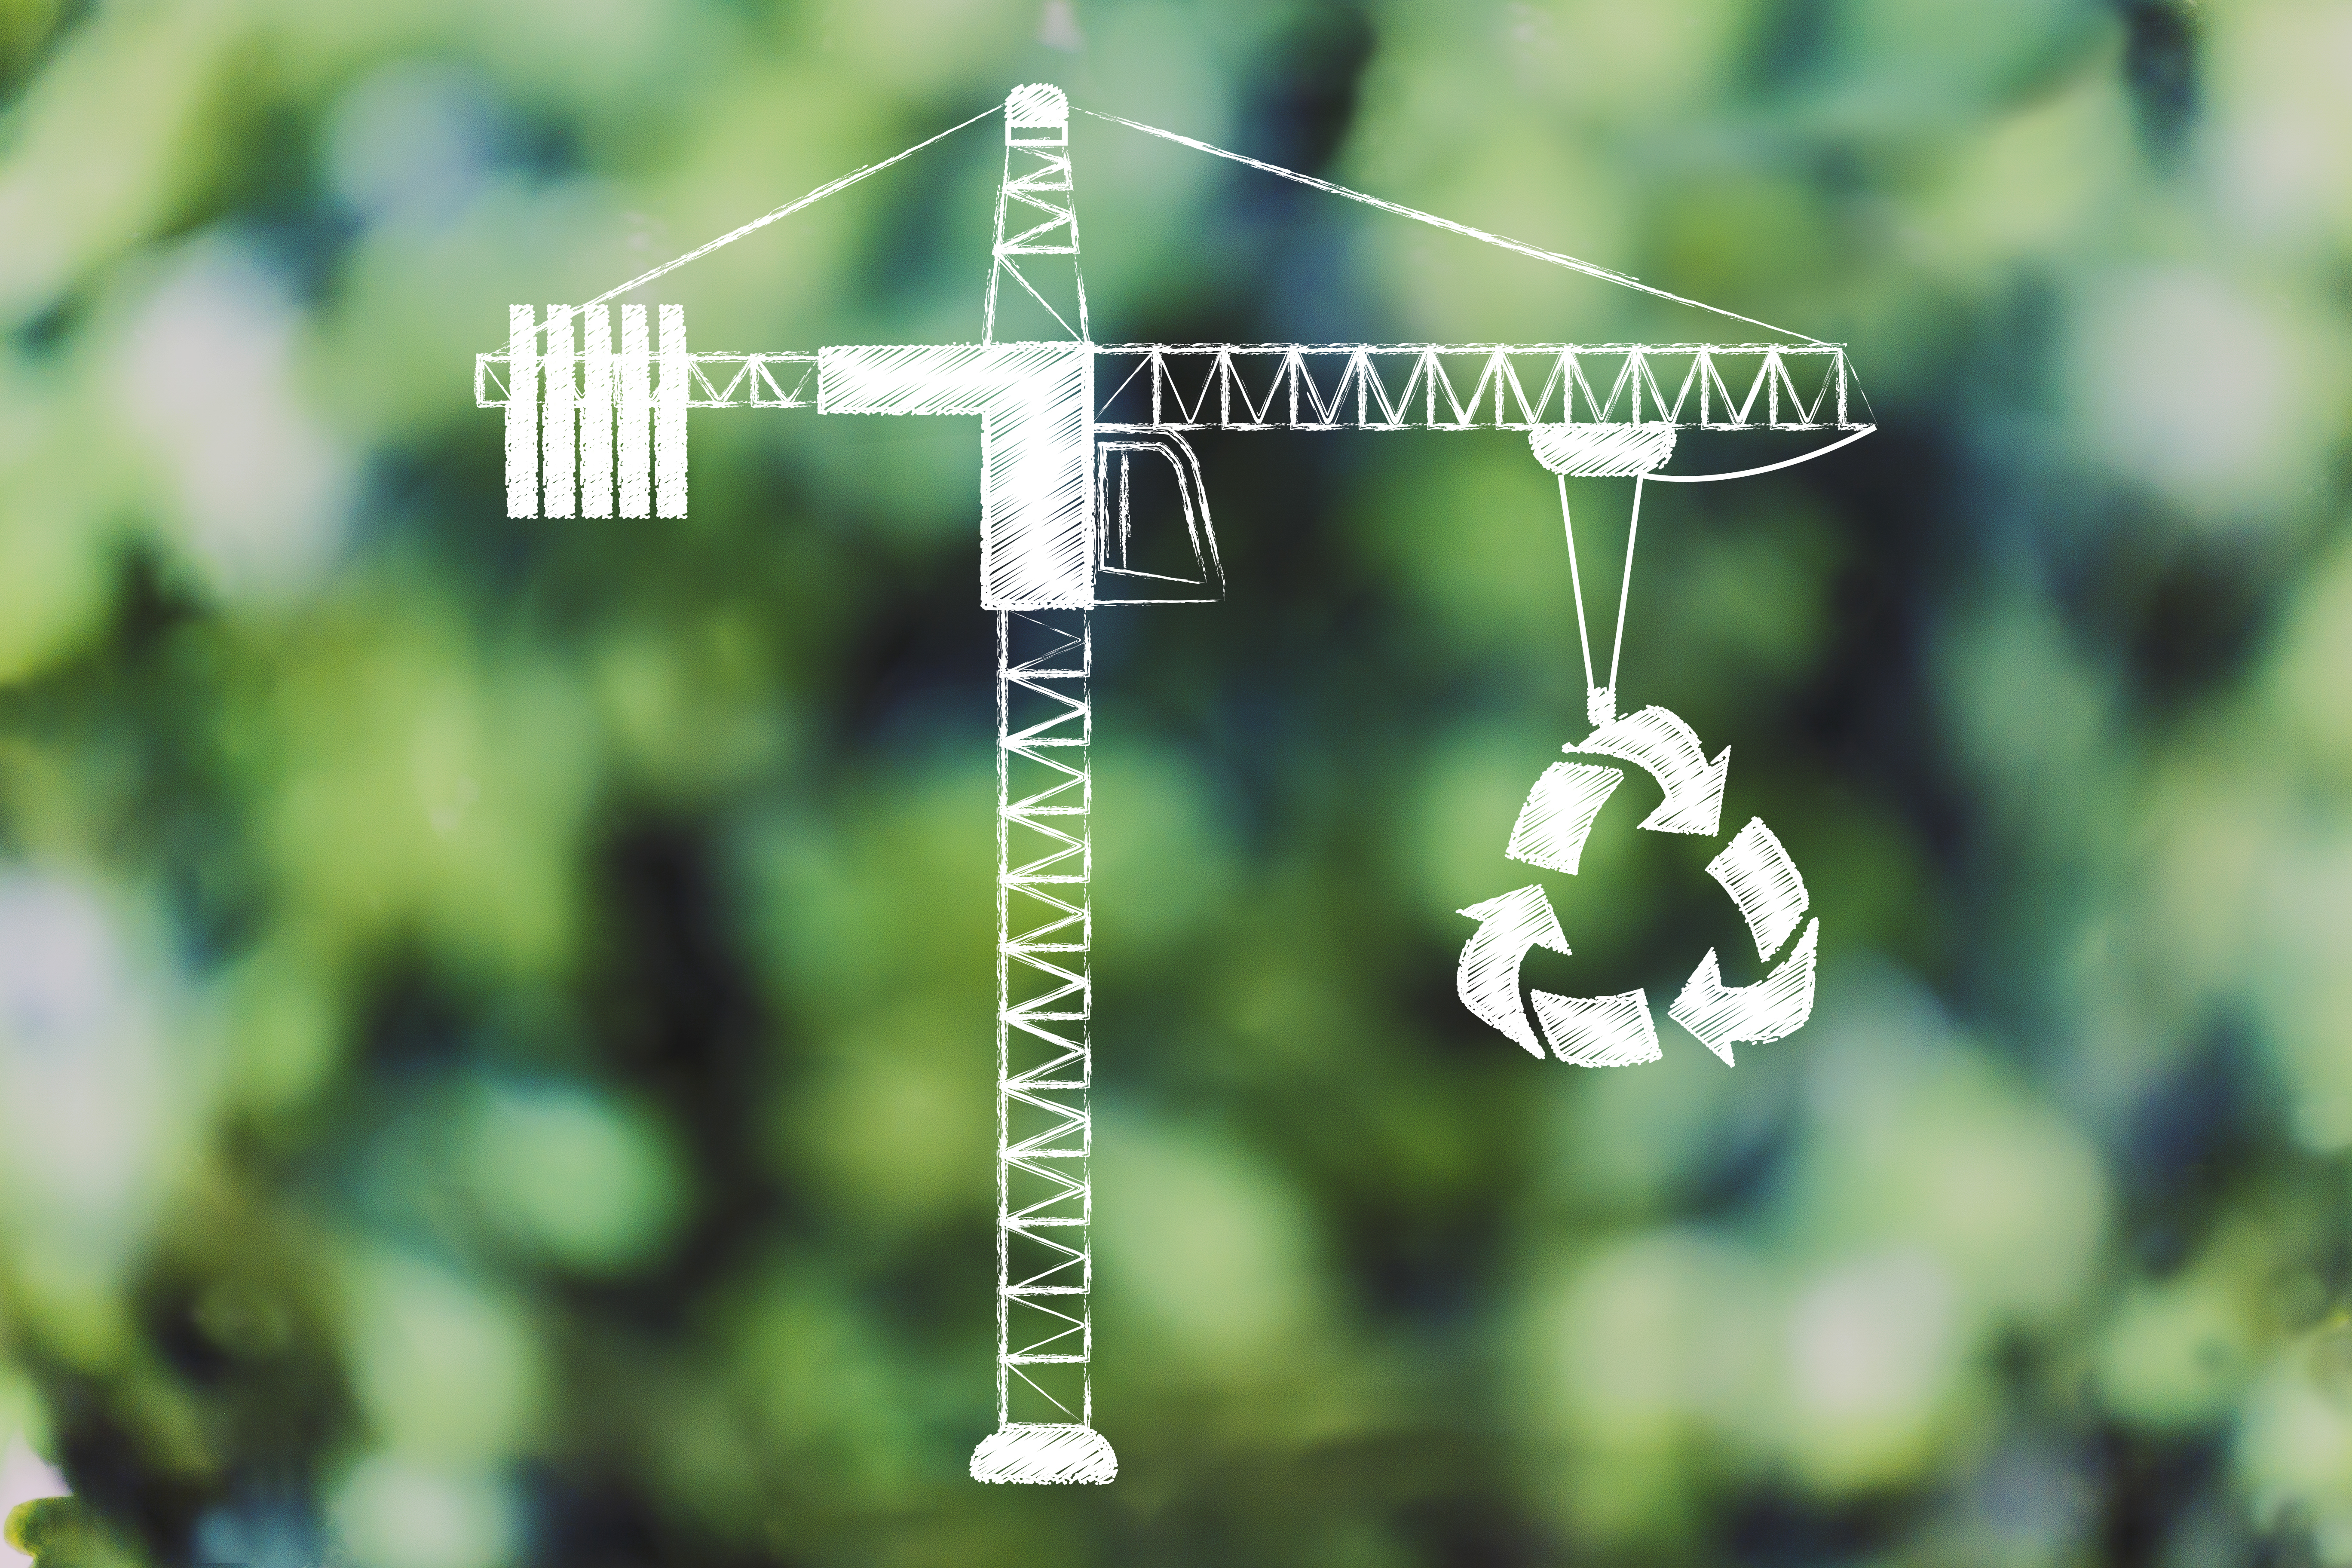 Drawing of a crane lifting a recycling symbol against a blurred green foliage background.